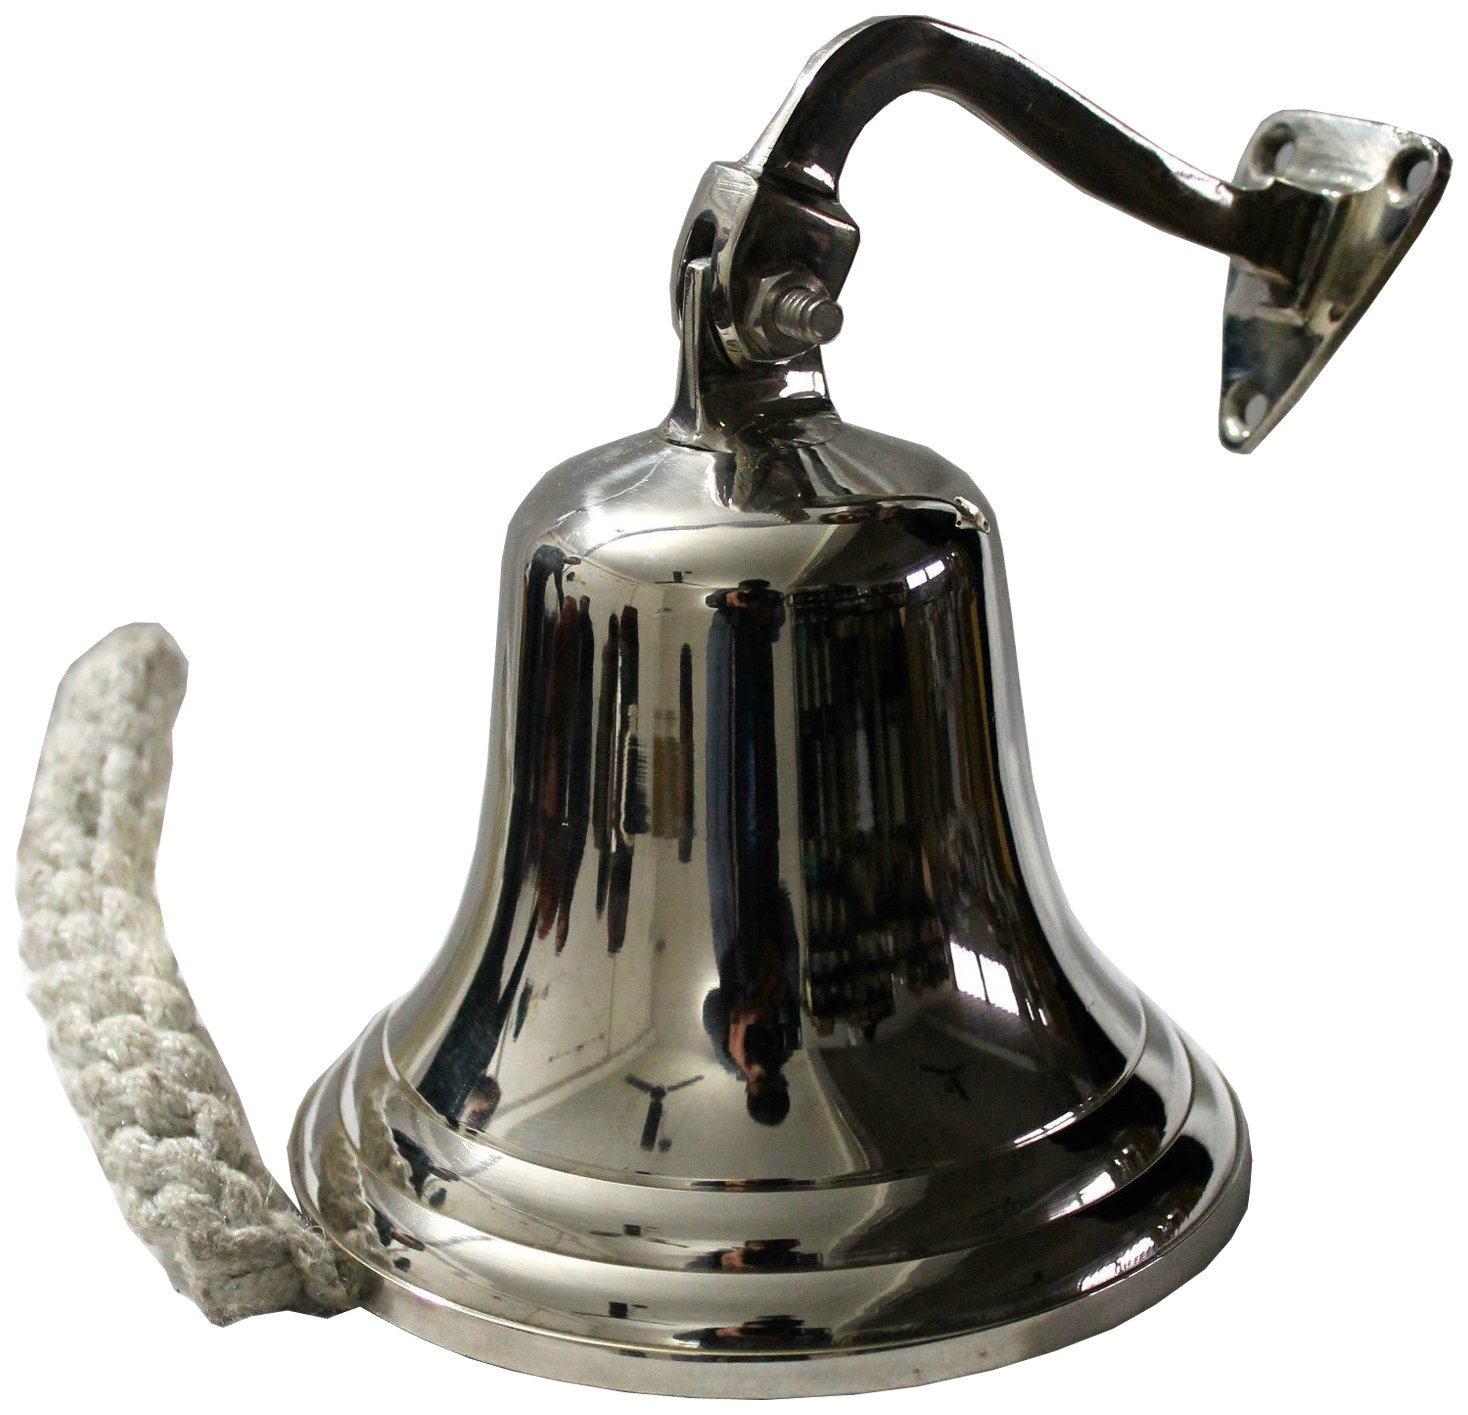 Nautical Reception ARSUK Boat Bell Antique Bell to Hang School Dinner Wall Decoration 3 cloche en laiton Marine in Solid Brass